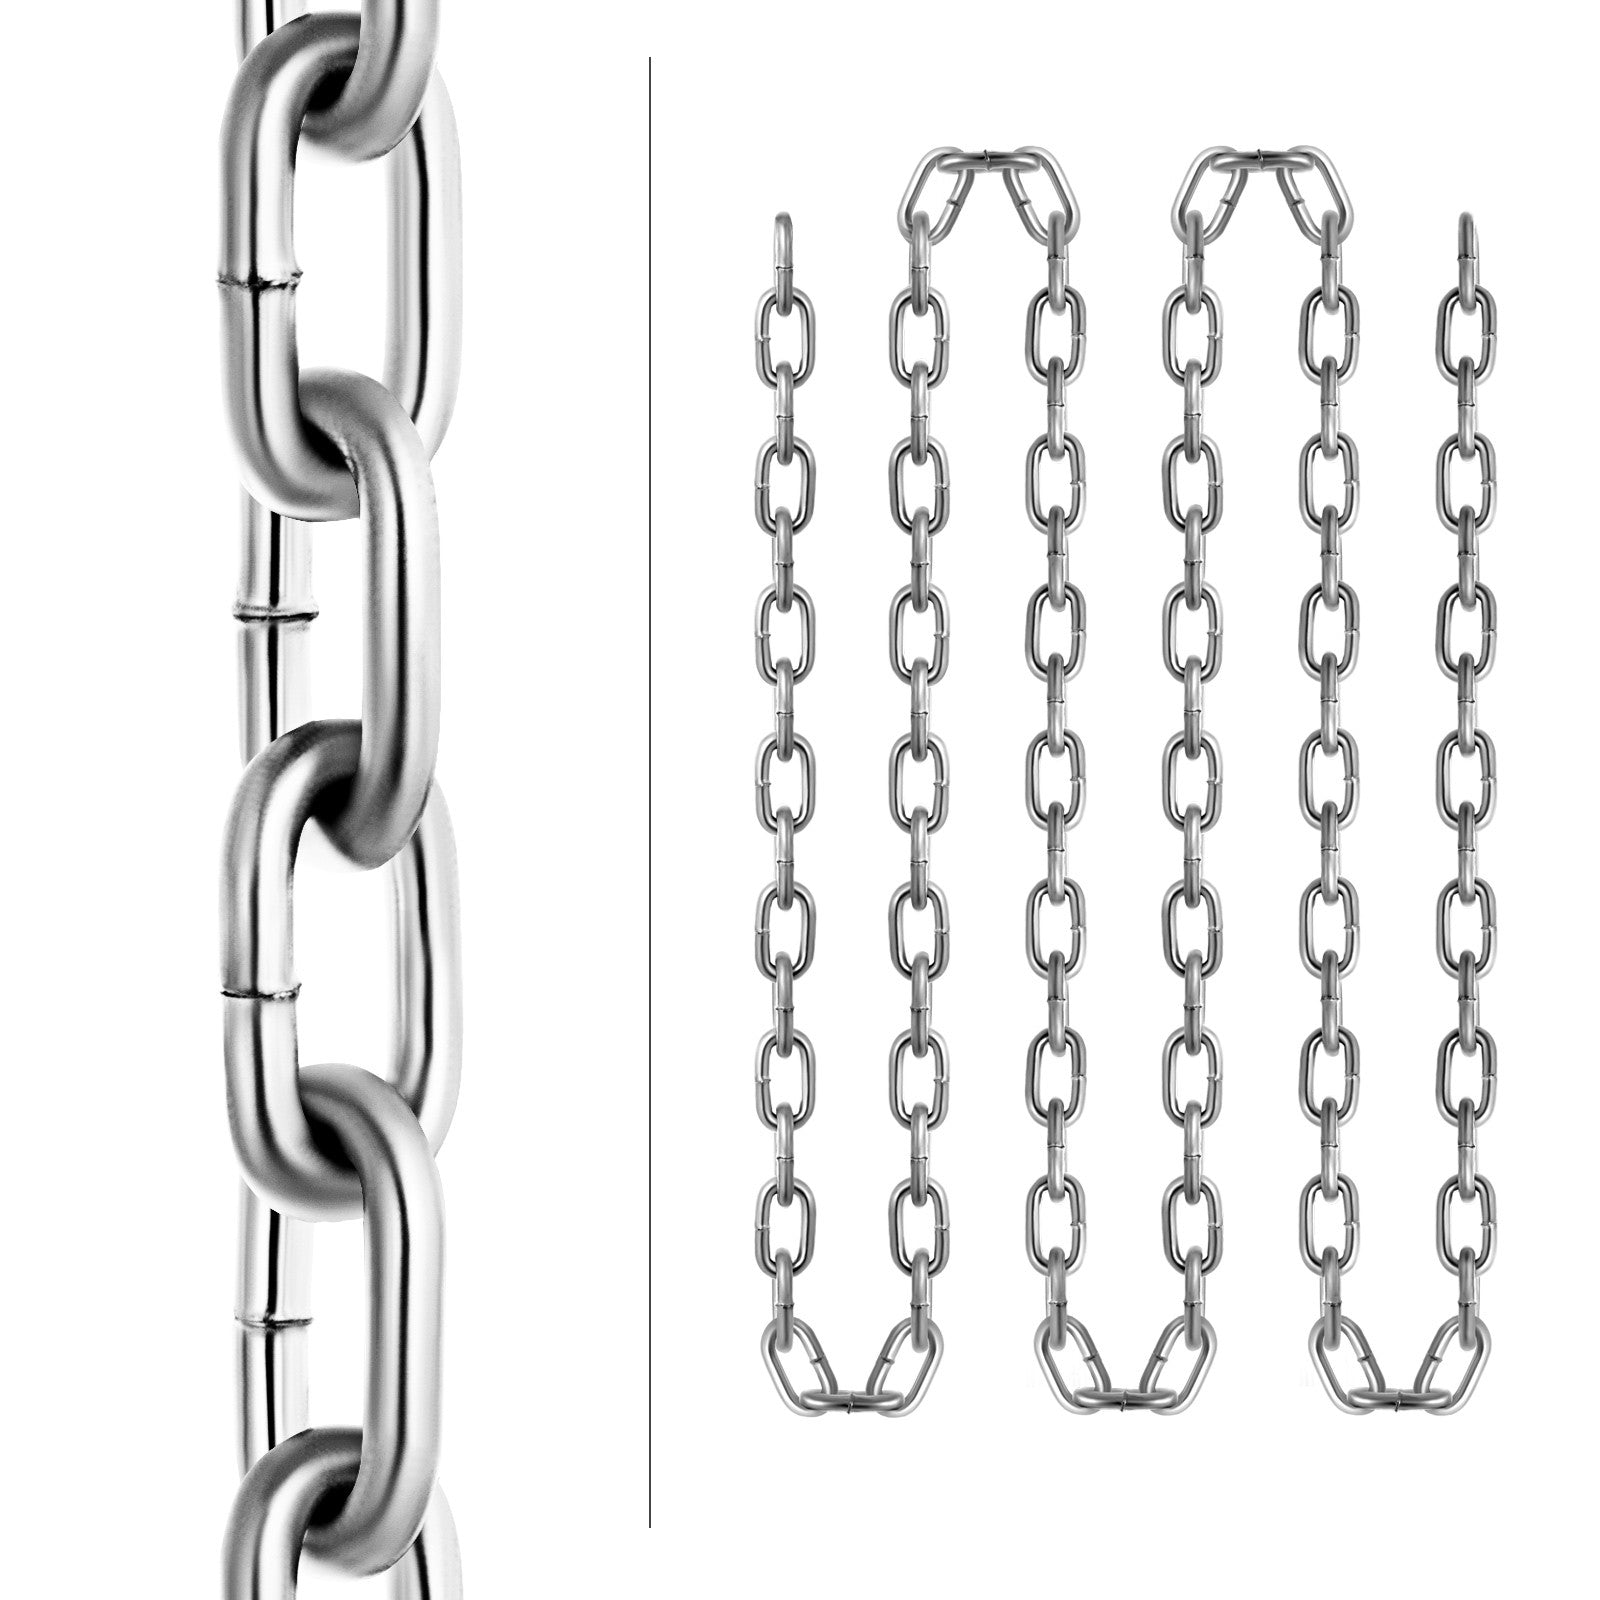 "Chain Sling G30 3/16""x100' Zinc Plated Proof Coil Chain Towing Pulling"